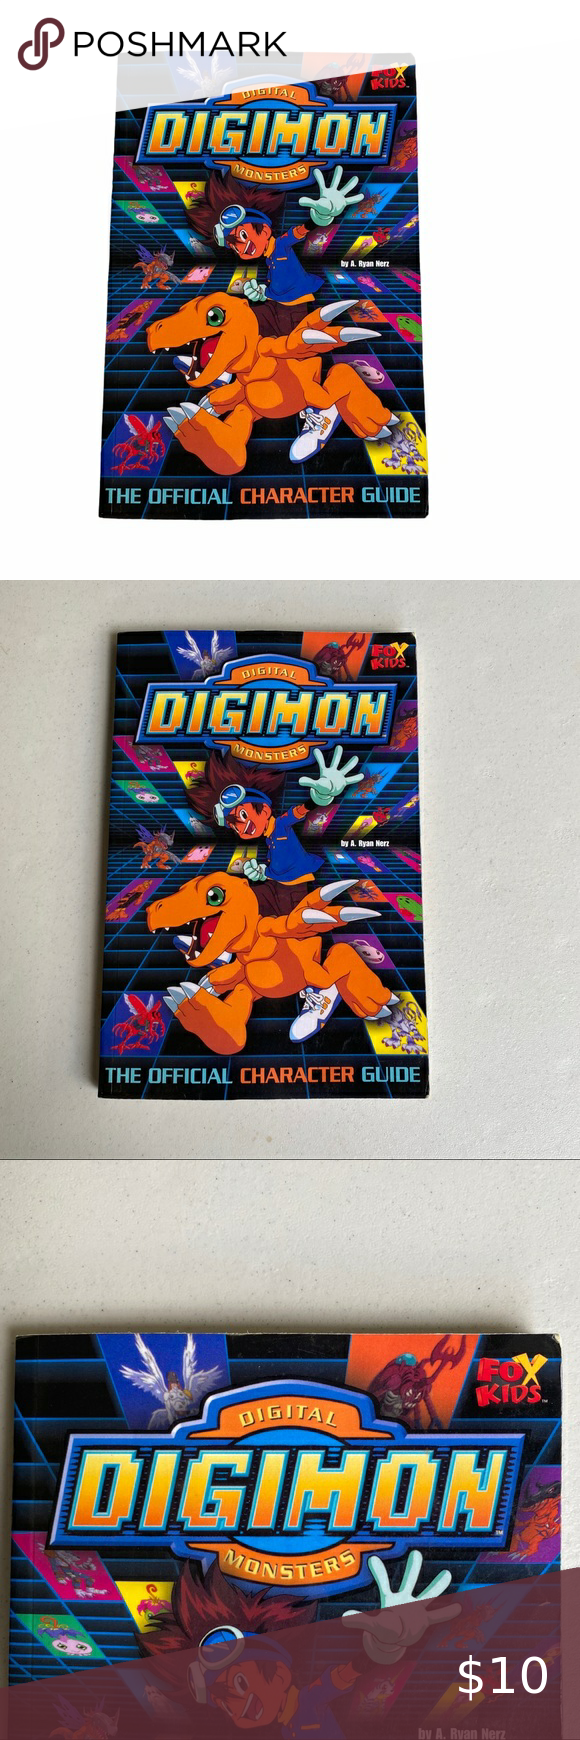 Digimon The Official Character Guide By A Ryan Digimon Character Paperback Books